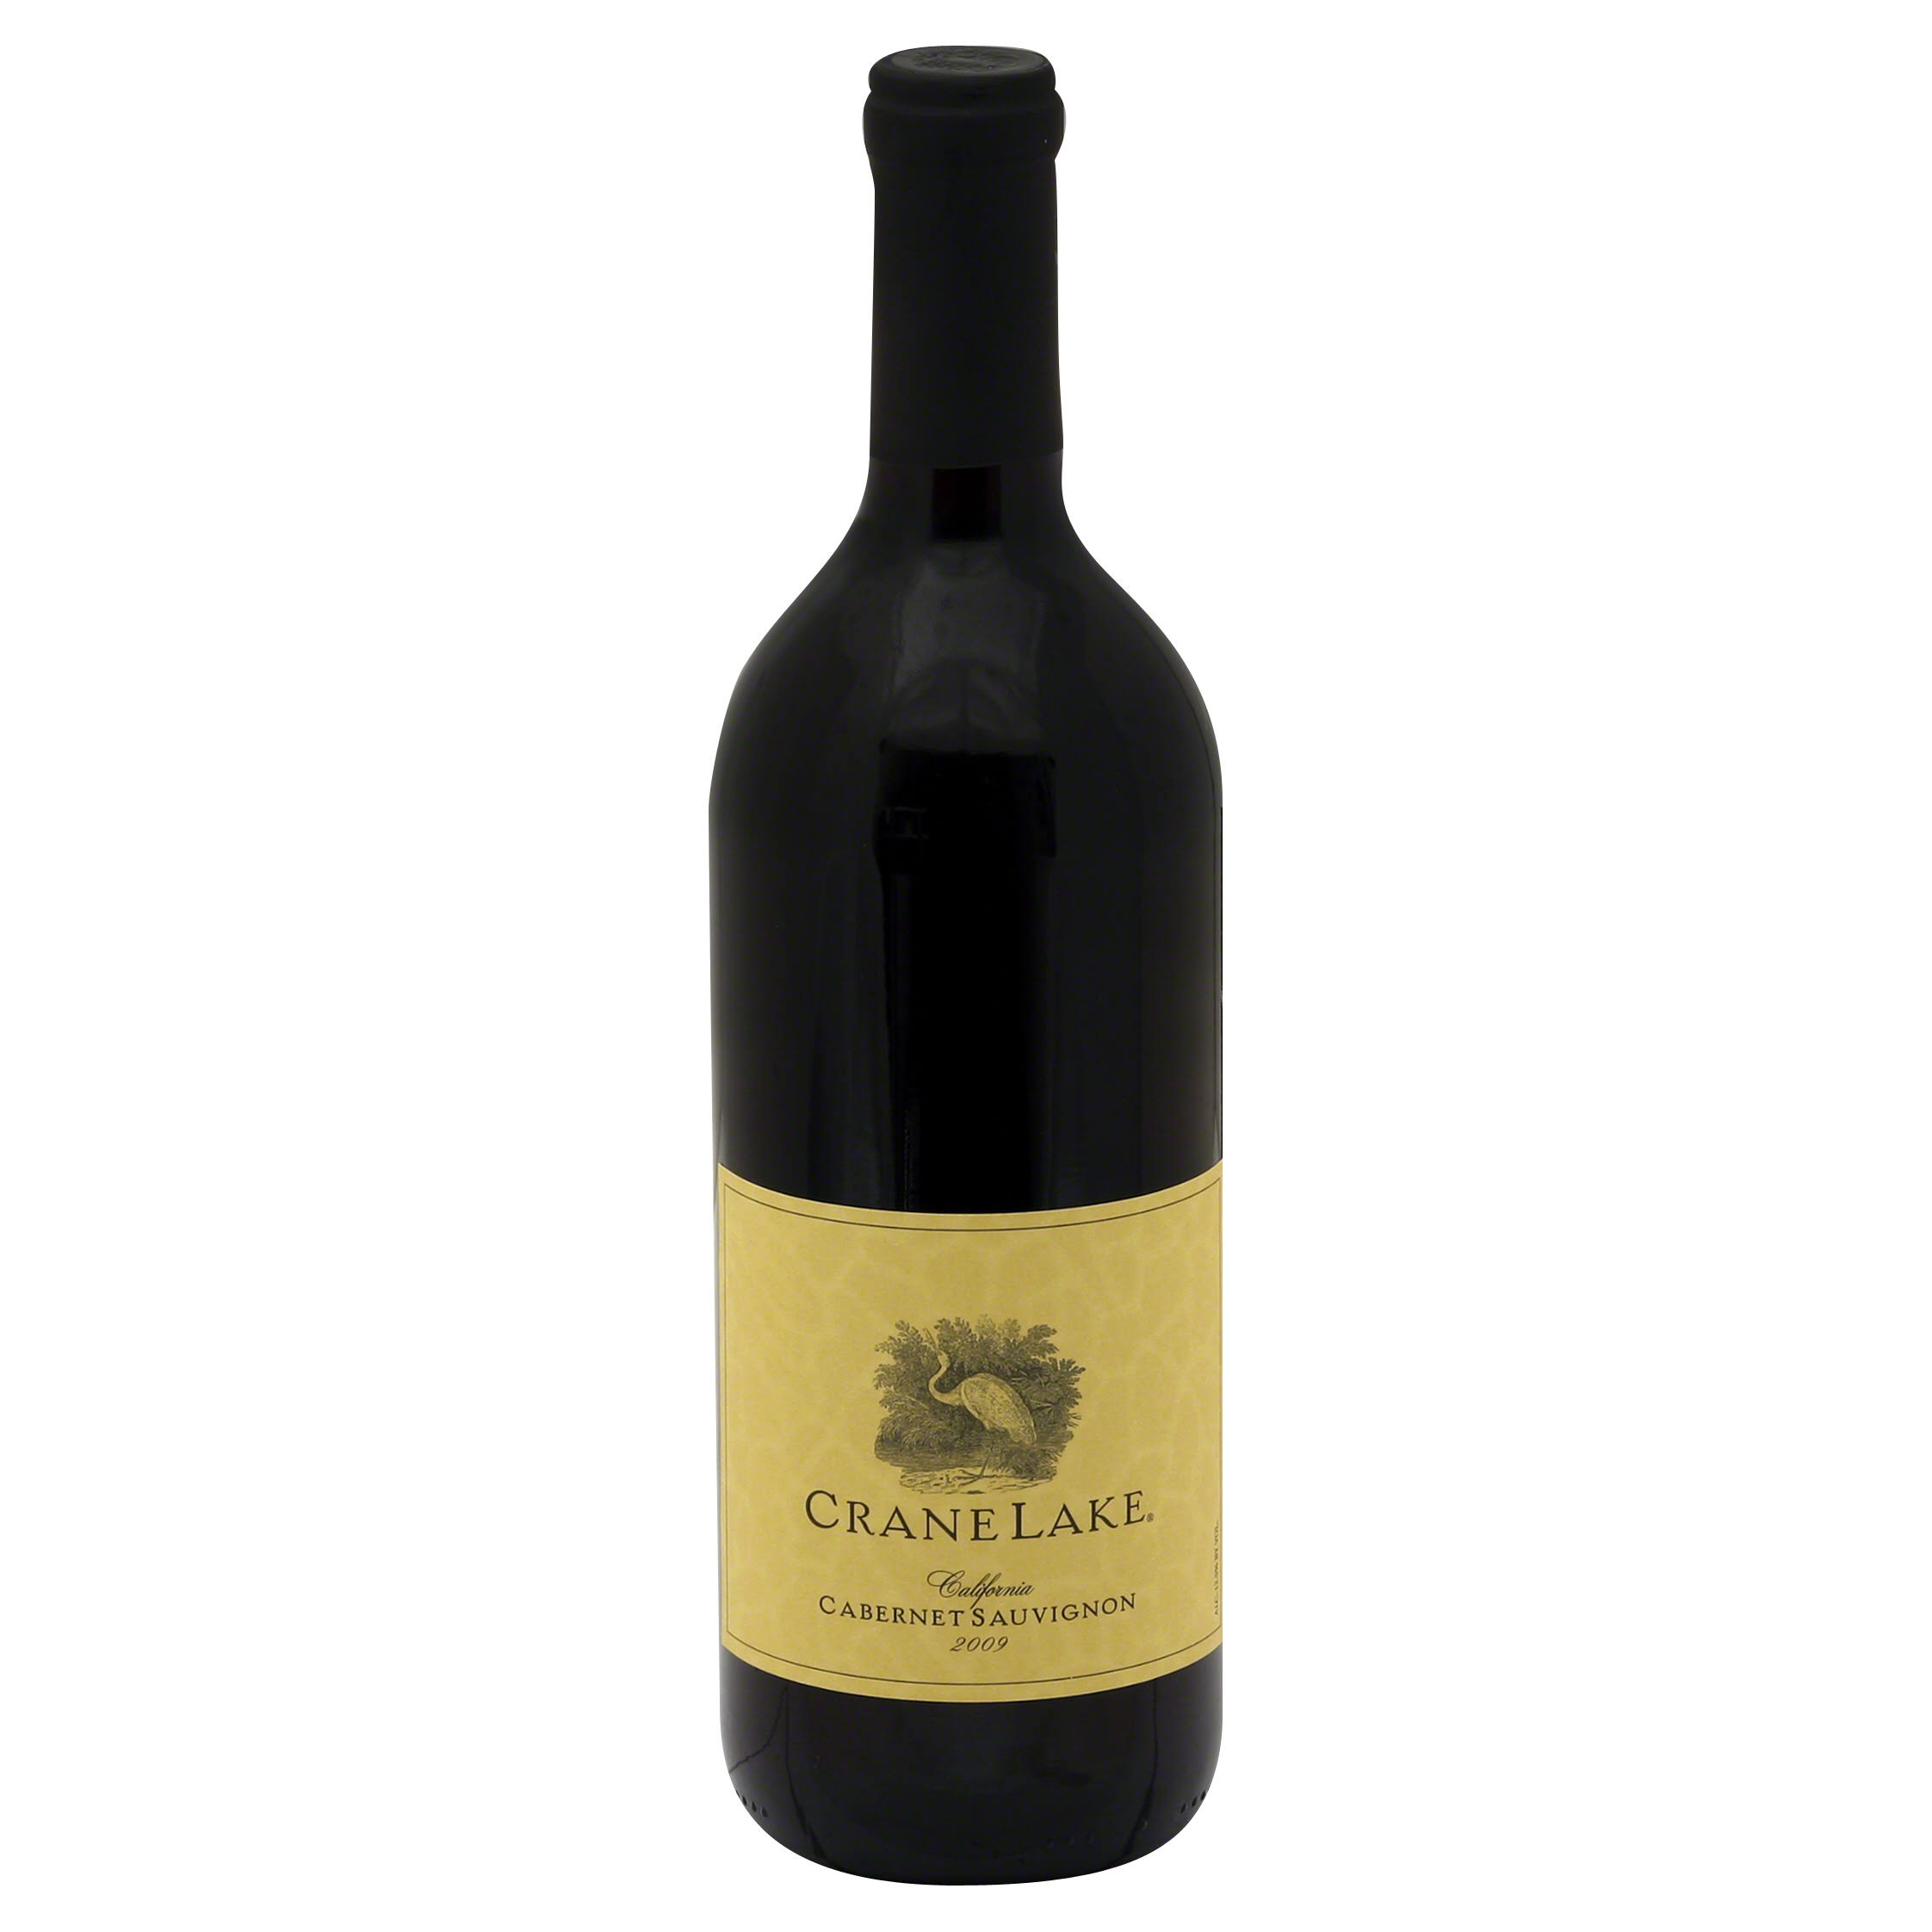 Crane Lake Cabernet Sauvignon, California, 2009 - 750 ml